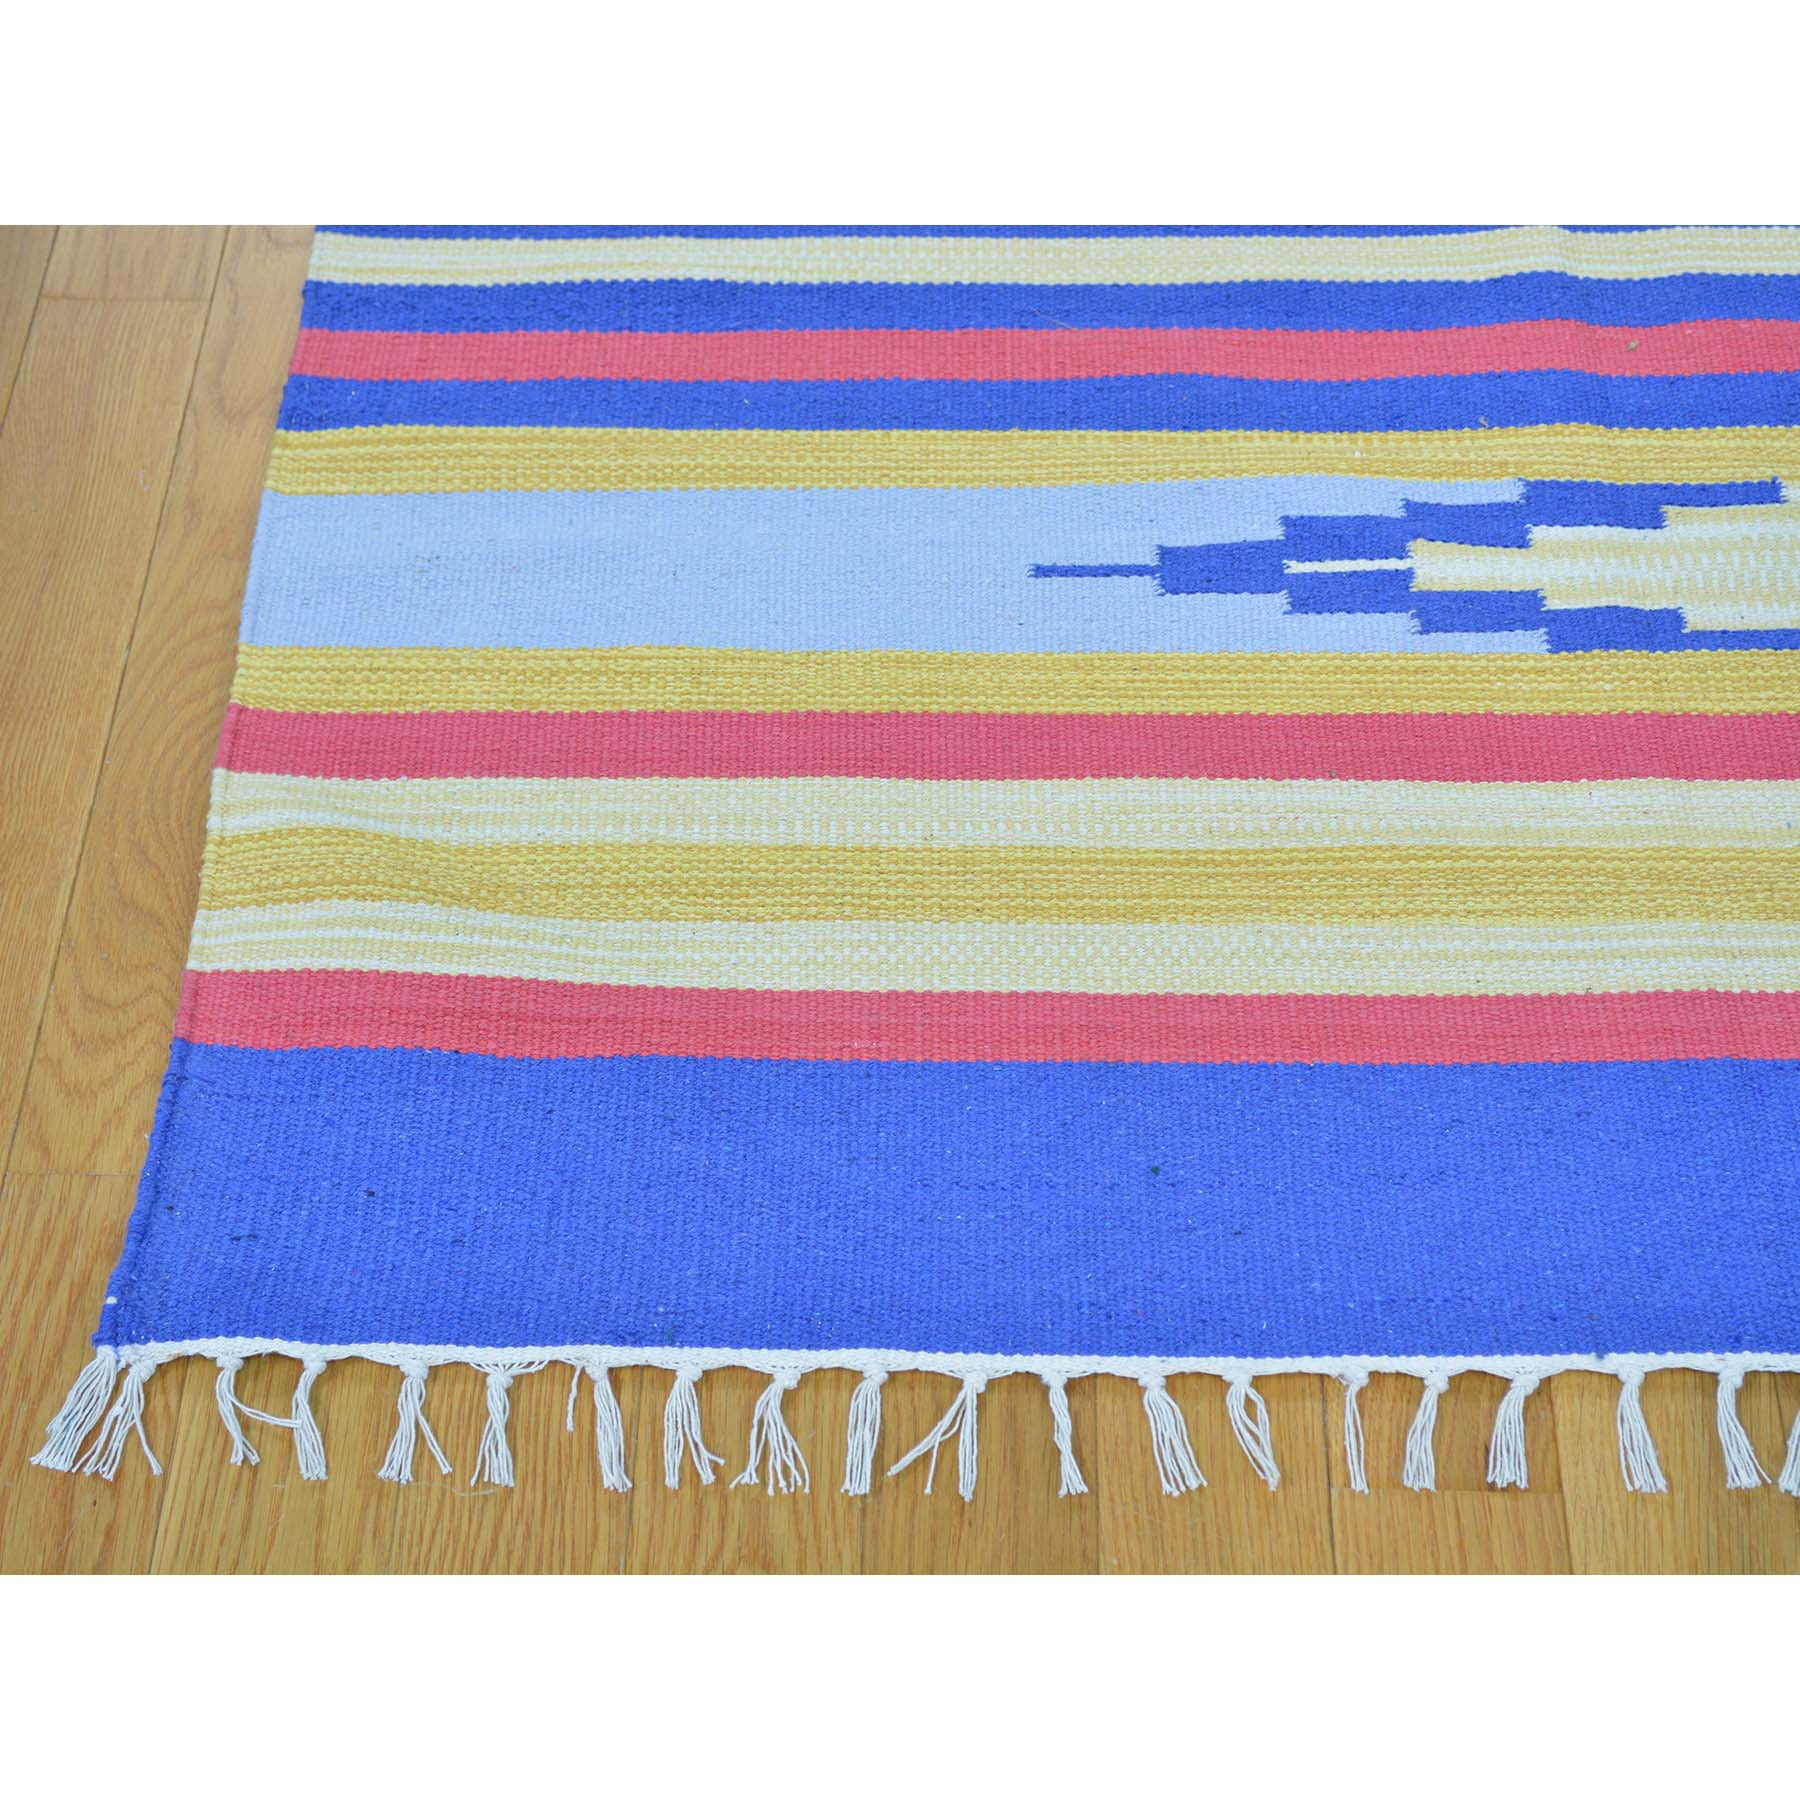 "Handmade Flat Weave Rectangle Rug > Design# SH26083 > Size: 8'-0"" x 10'-1"" [ONLINE ONLY]"